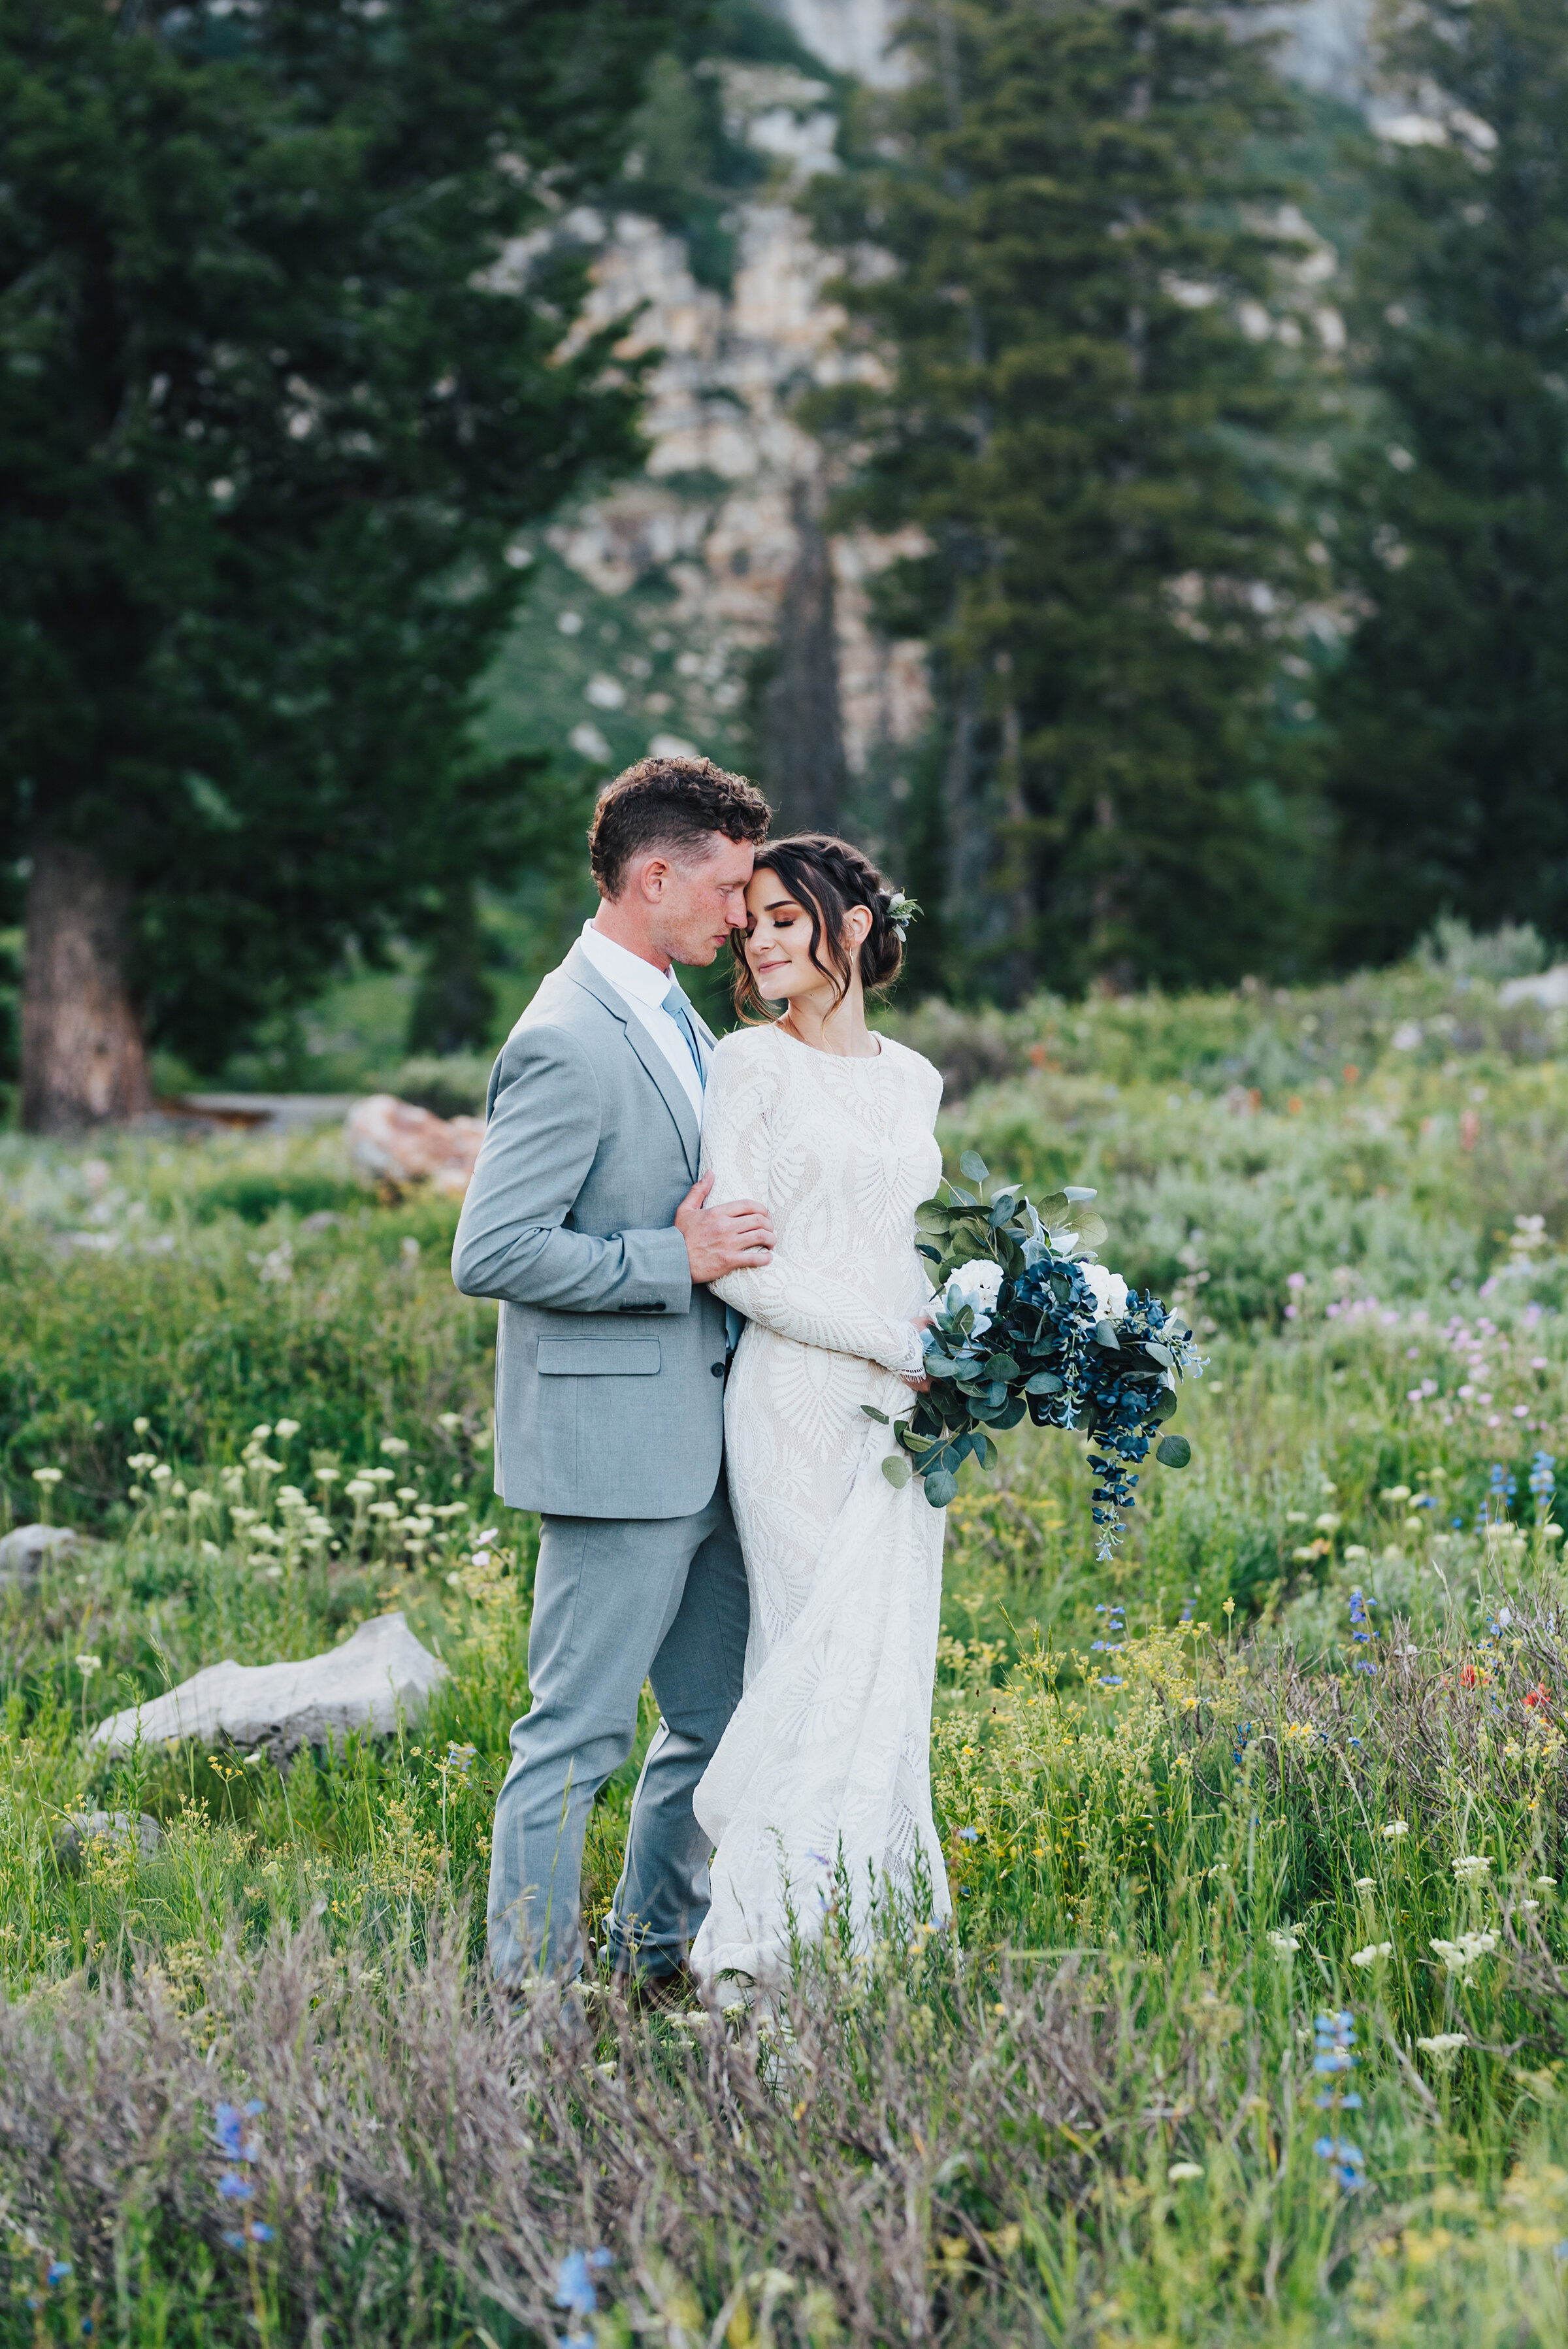 Bride and groom so in love during their formals up Logan canyon at Tony Grove. Kristi Alyse photography Logan Utah wedding photographer forest nature dreamy formals Logan canyon Tony Grove scenic bridals Northern Utah photographer Utah brides bride and groom Cache Valley #kristialysephotography #loganutahphotographer #tonygrove #logancanyon #utahweddingphotographer #bridals #formals #wildflowers #northernutah #utahbrides